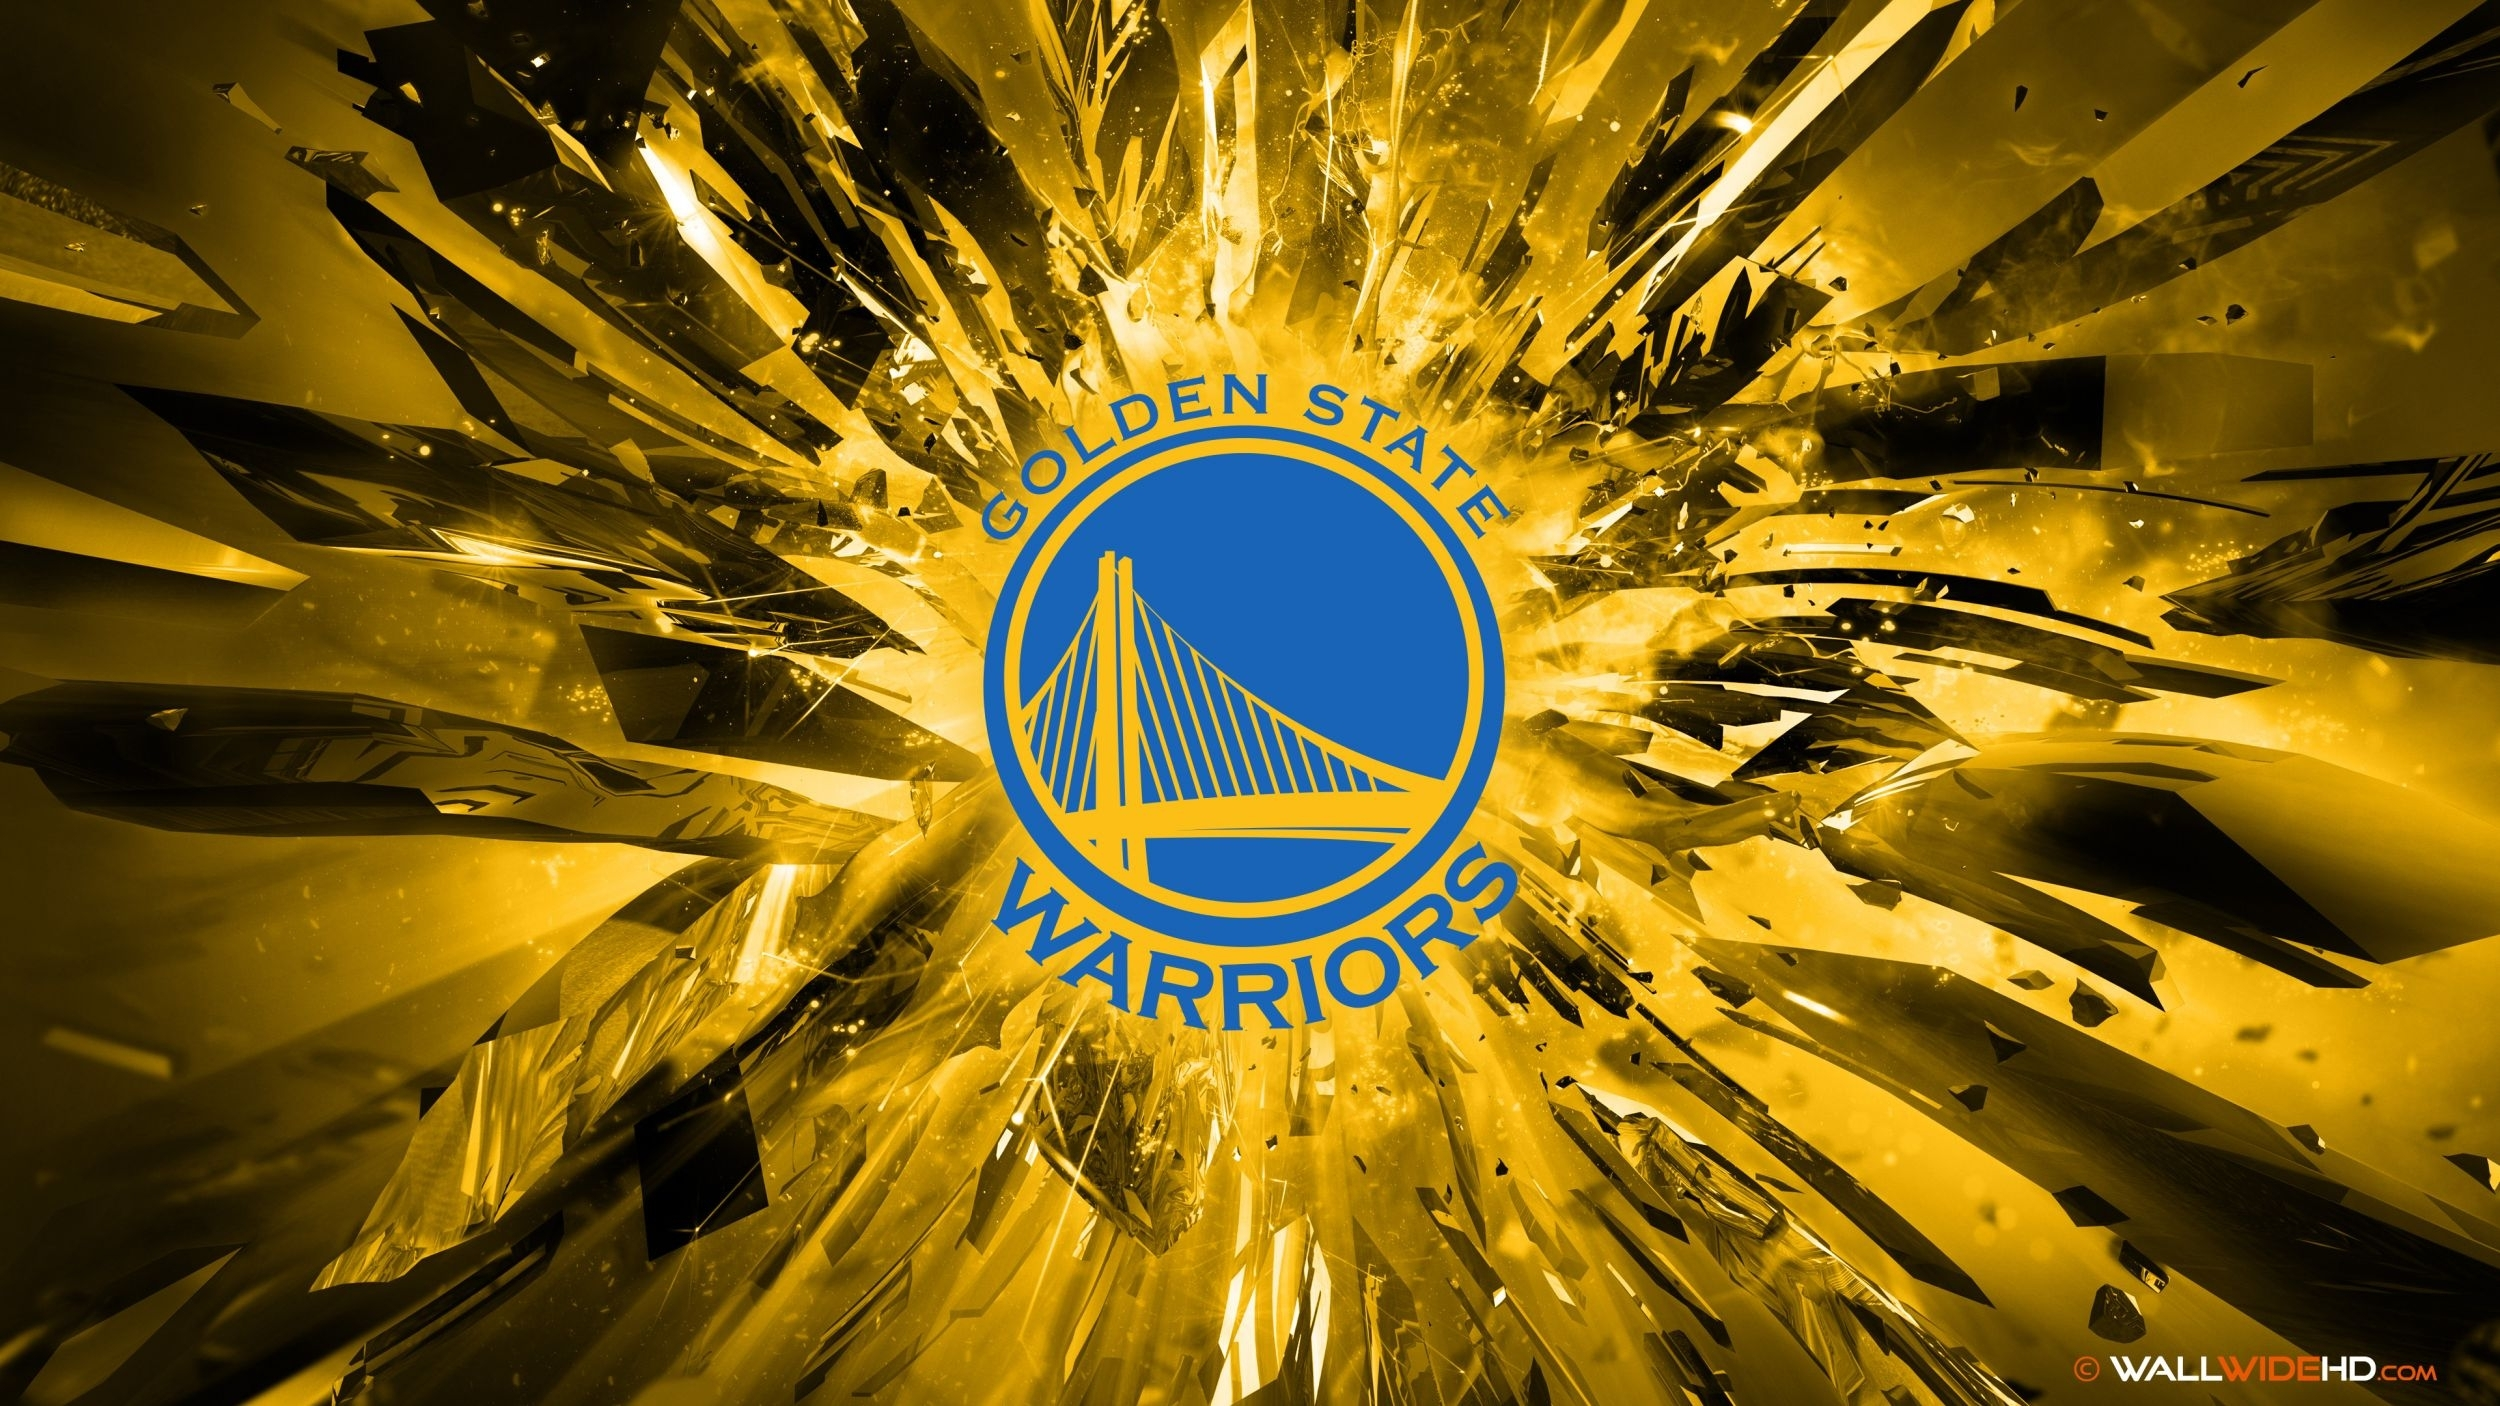 best hd golden state warriors wallpapers, 3840x2160 px for pc & mac